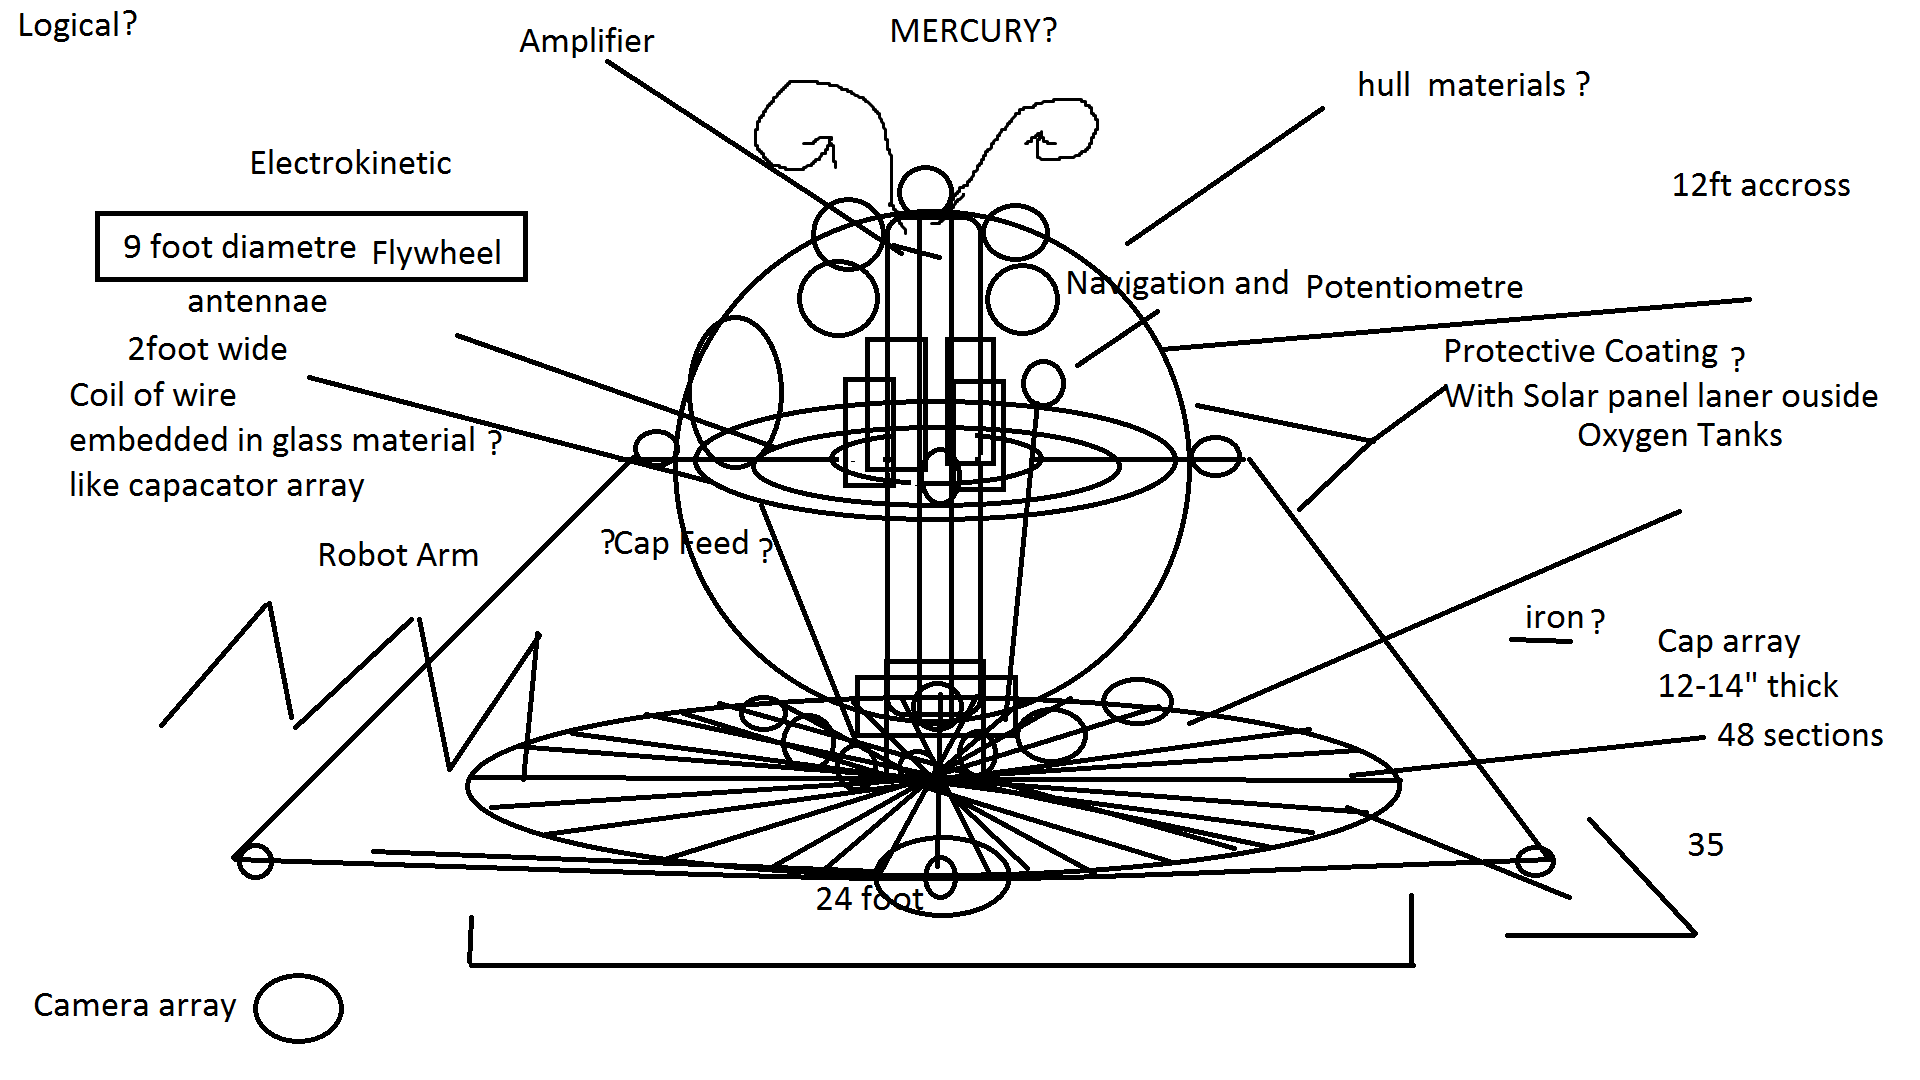 Mercury Engine Diagram Wiring Diagram For Mercury Outboard